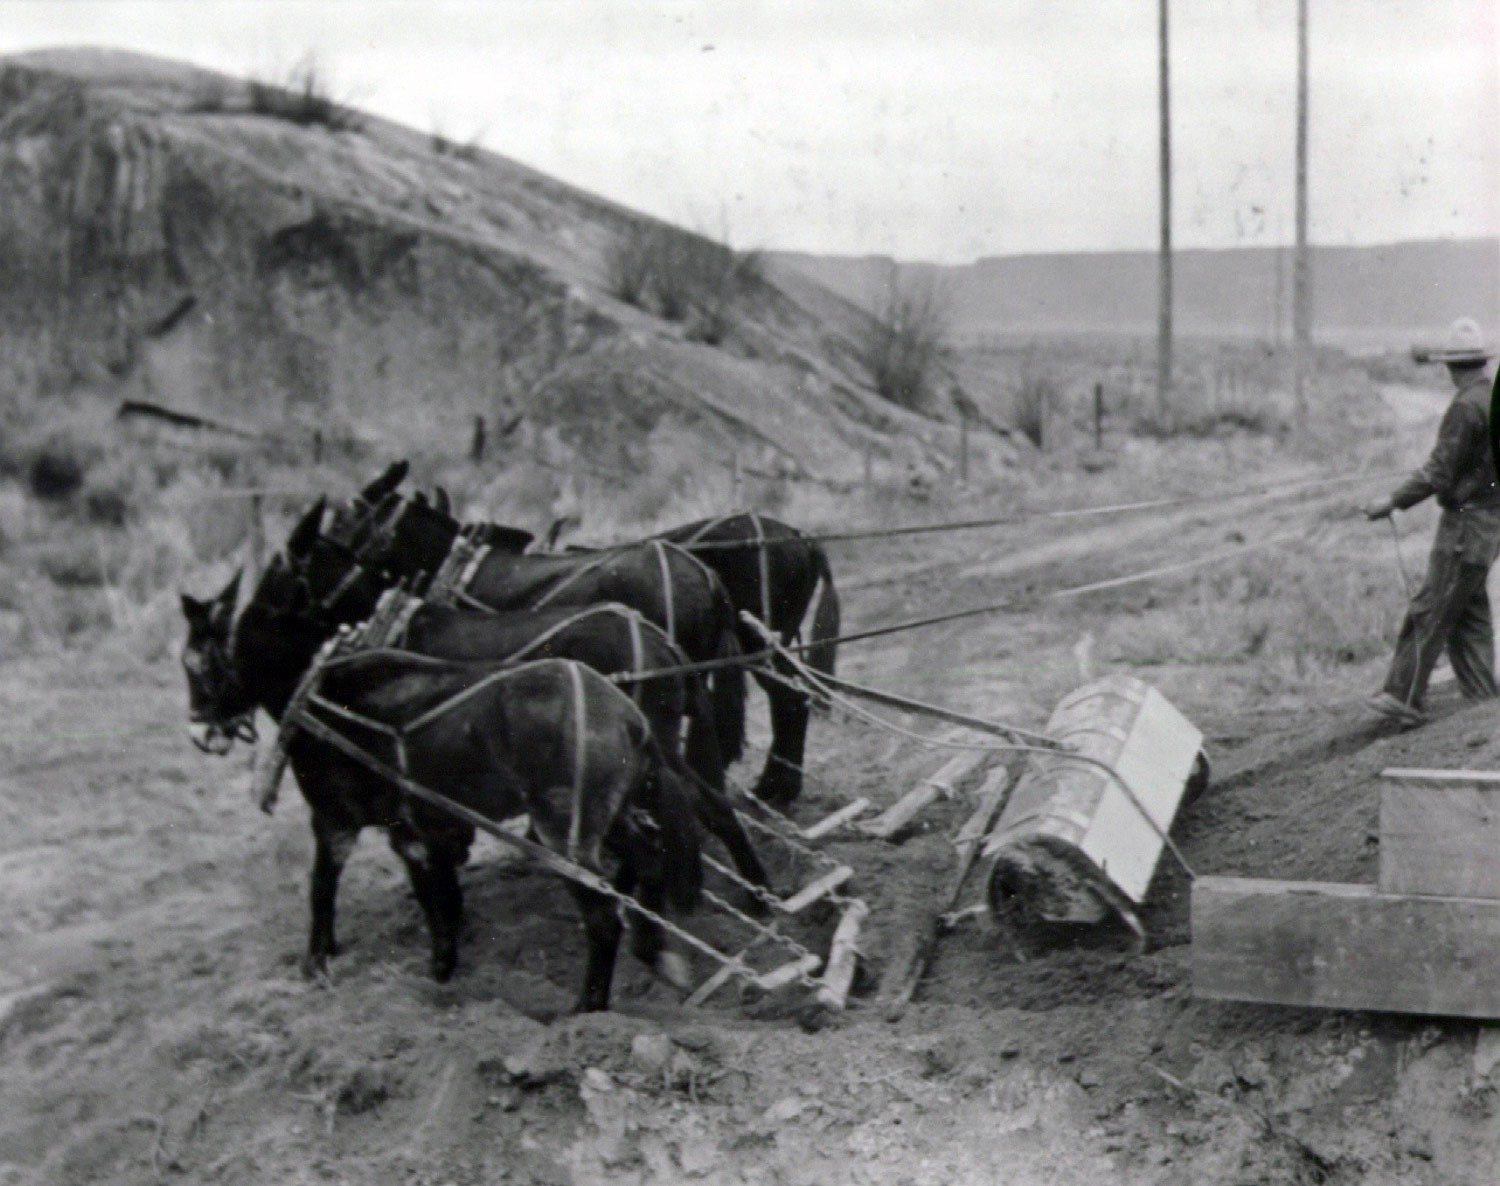 Circa 1935. Preparing bed with mules for laying ties for railroad. Source: US Bureau of Reclamation: managing water in the west.